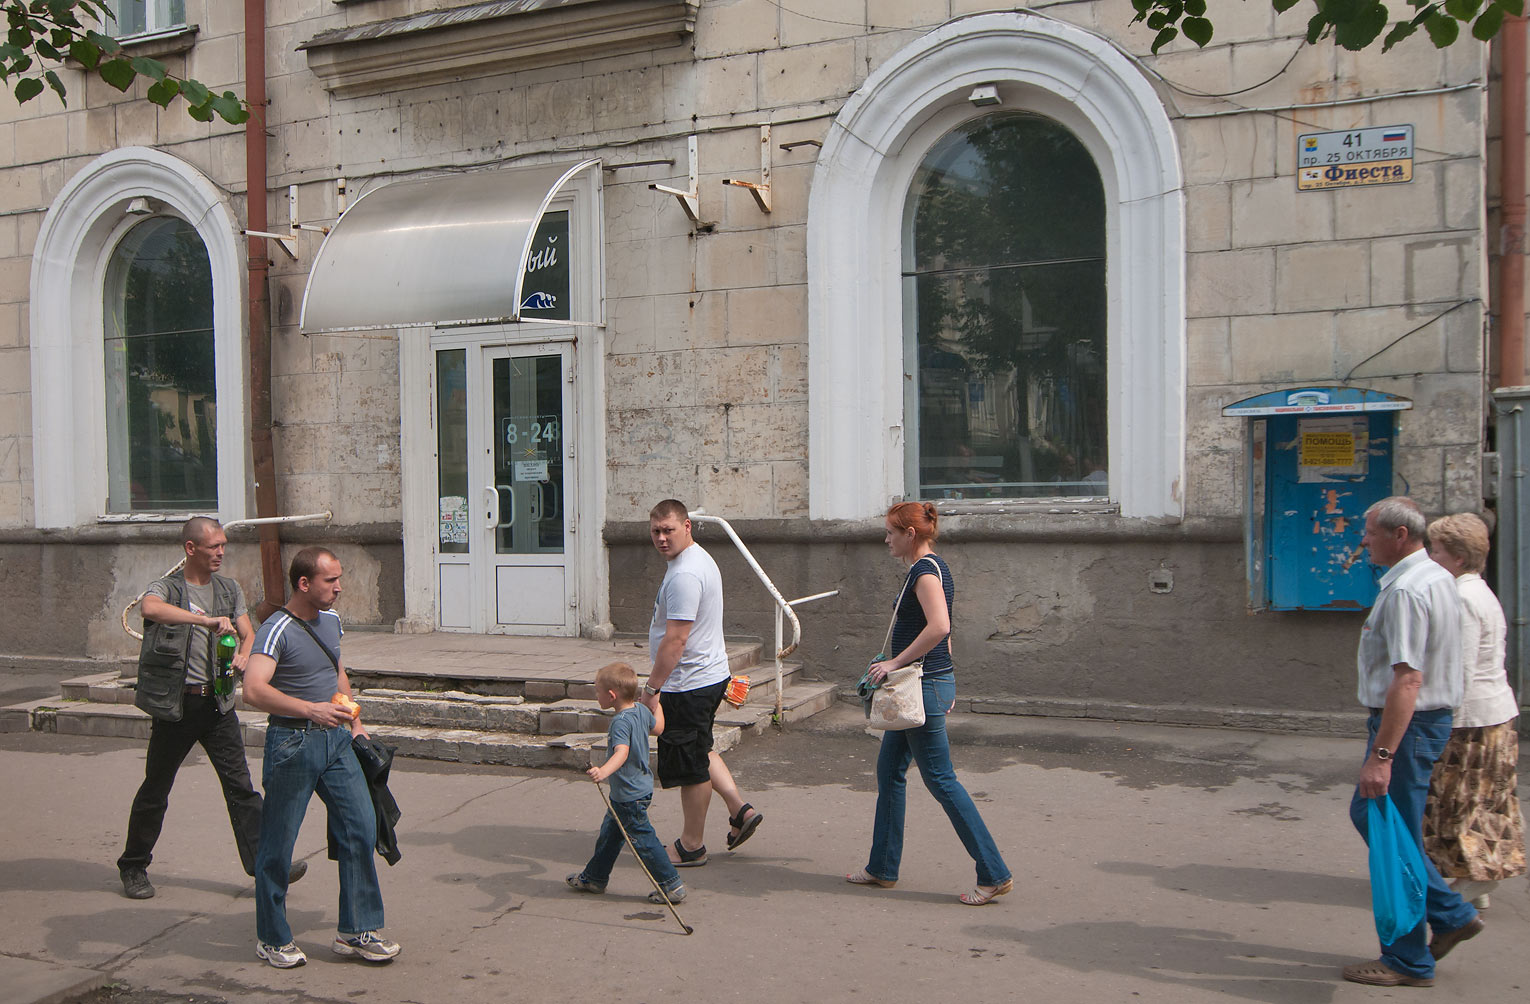 Pedestrians on 25 Oktiabria St., view from a...a suburb of St.Petersburg, Russia